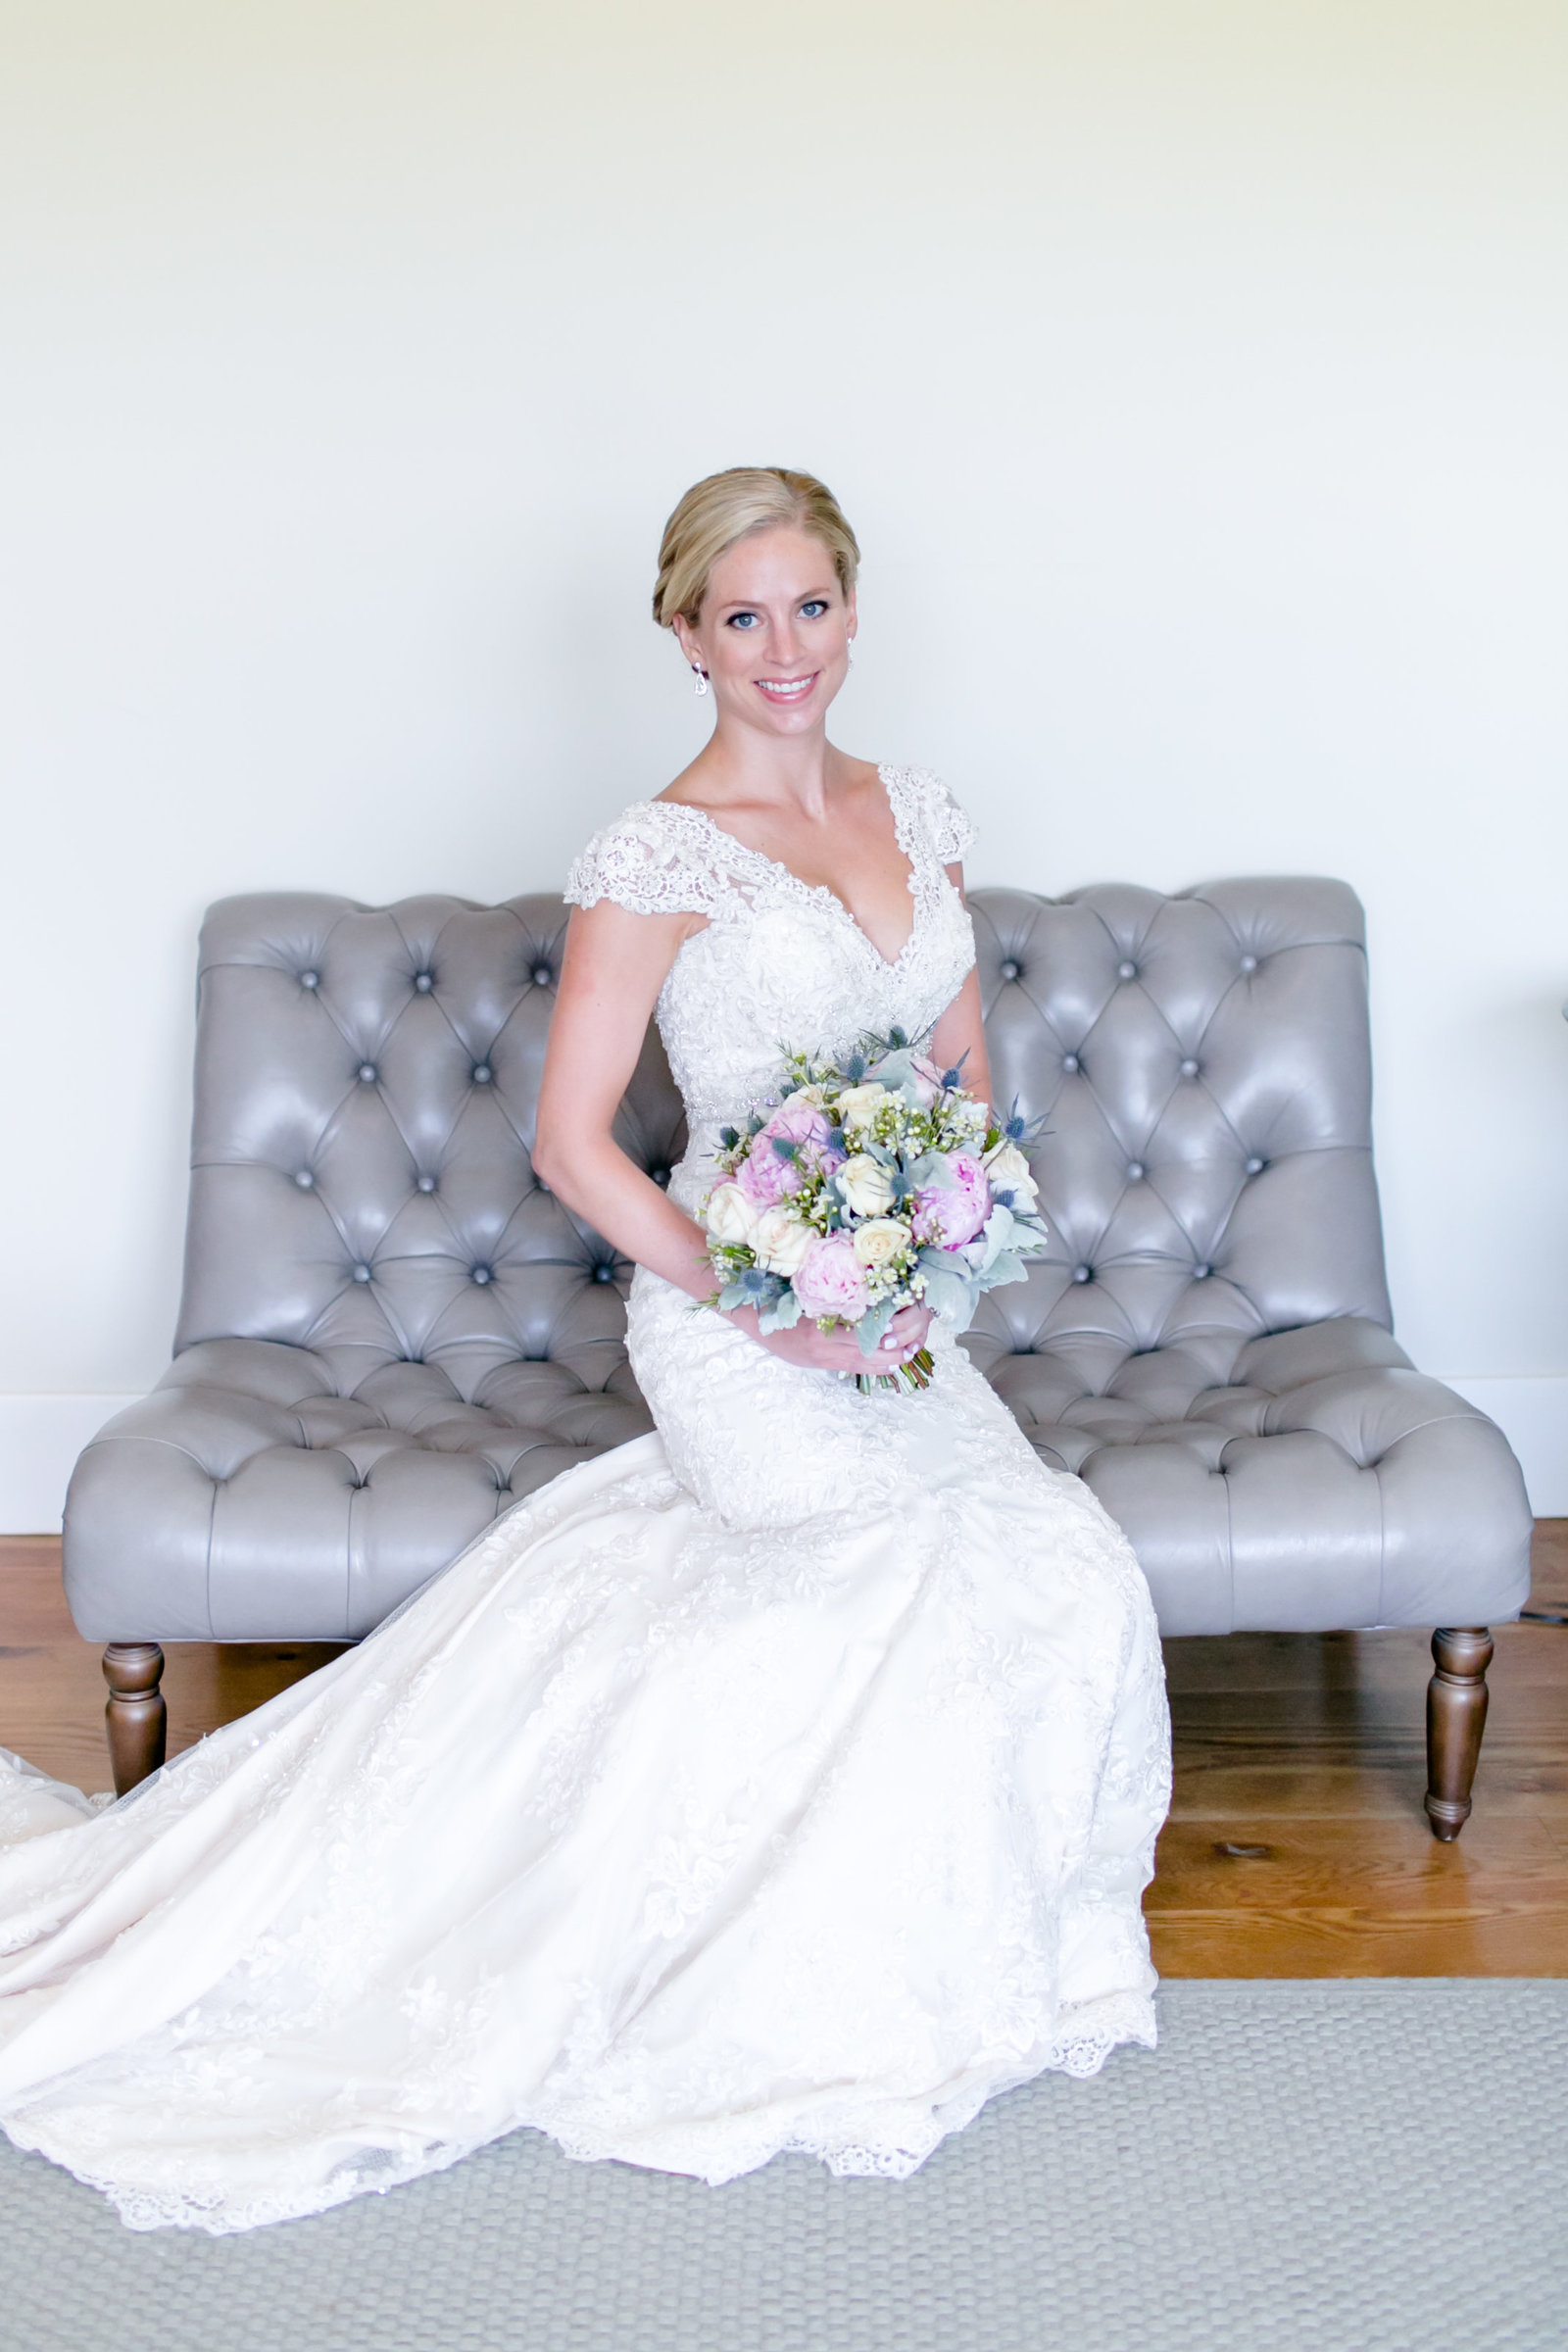 Carley Rehberg Photography - Wedding Photographer - Photo44